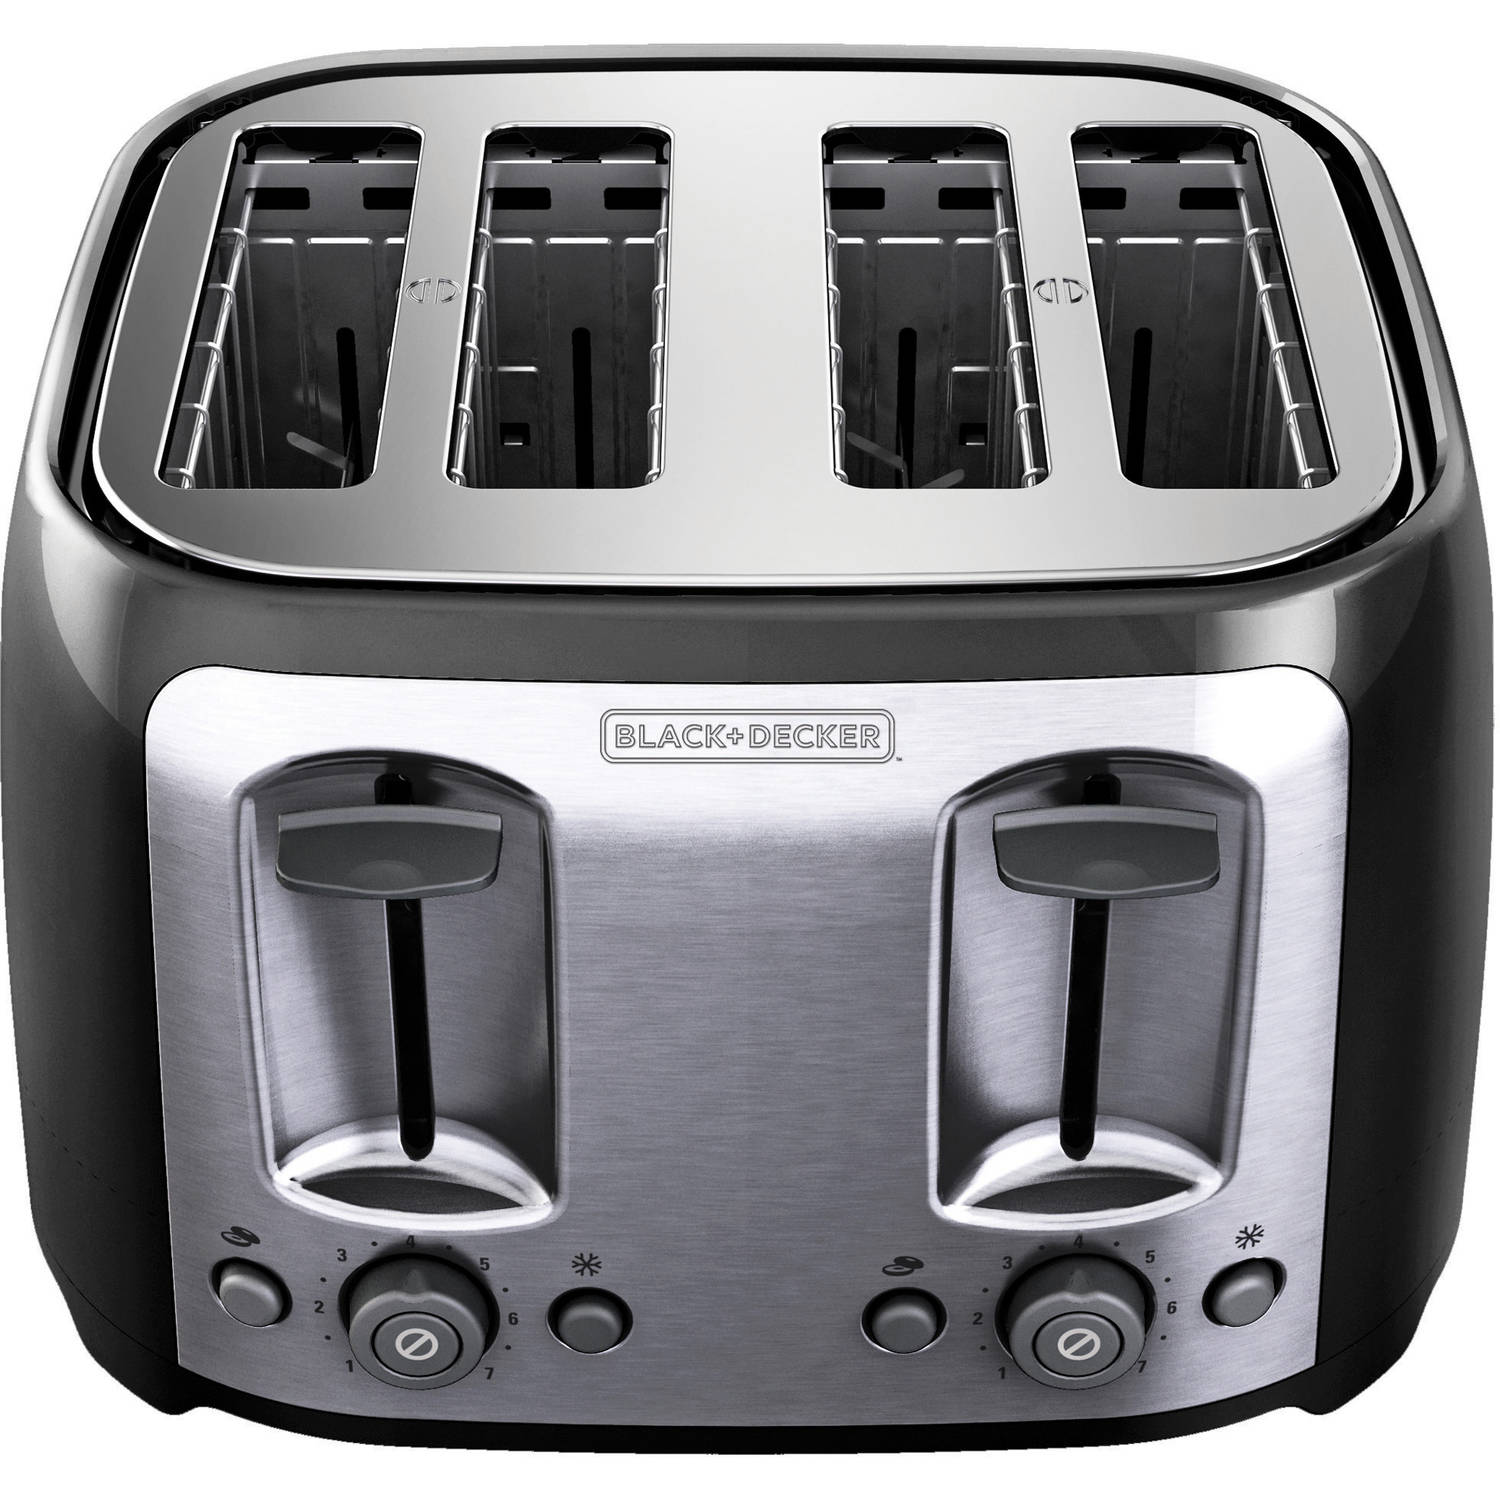 BLACK+DECKER 4-Slice Multi-Function Toaster, Bagel Toaster, Black TR1478BD